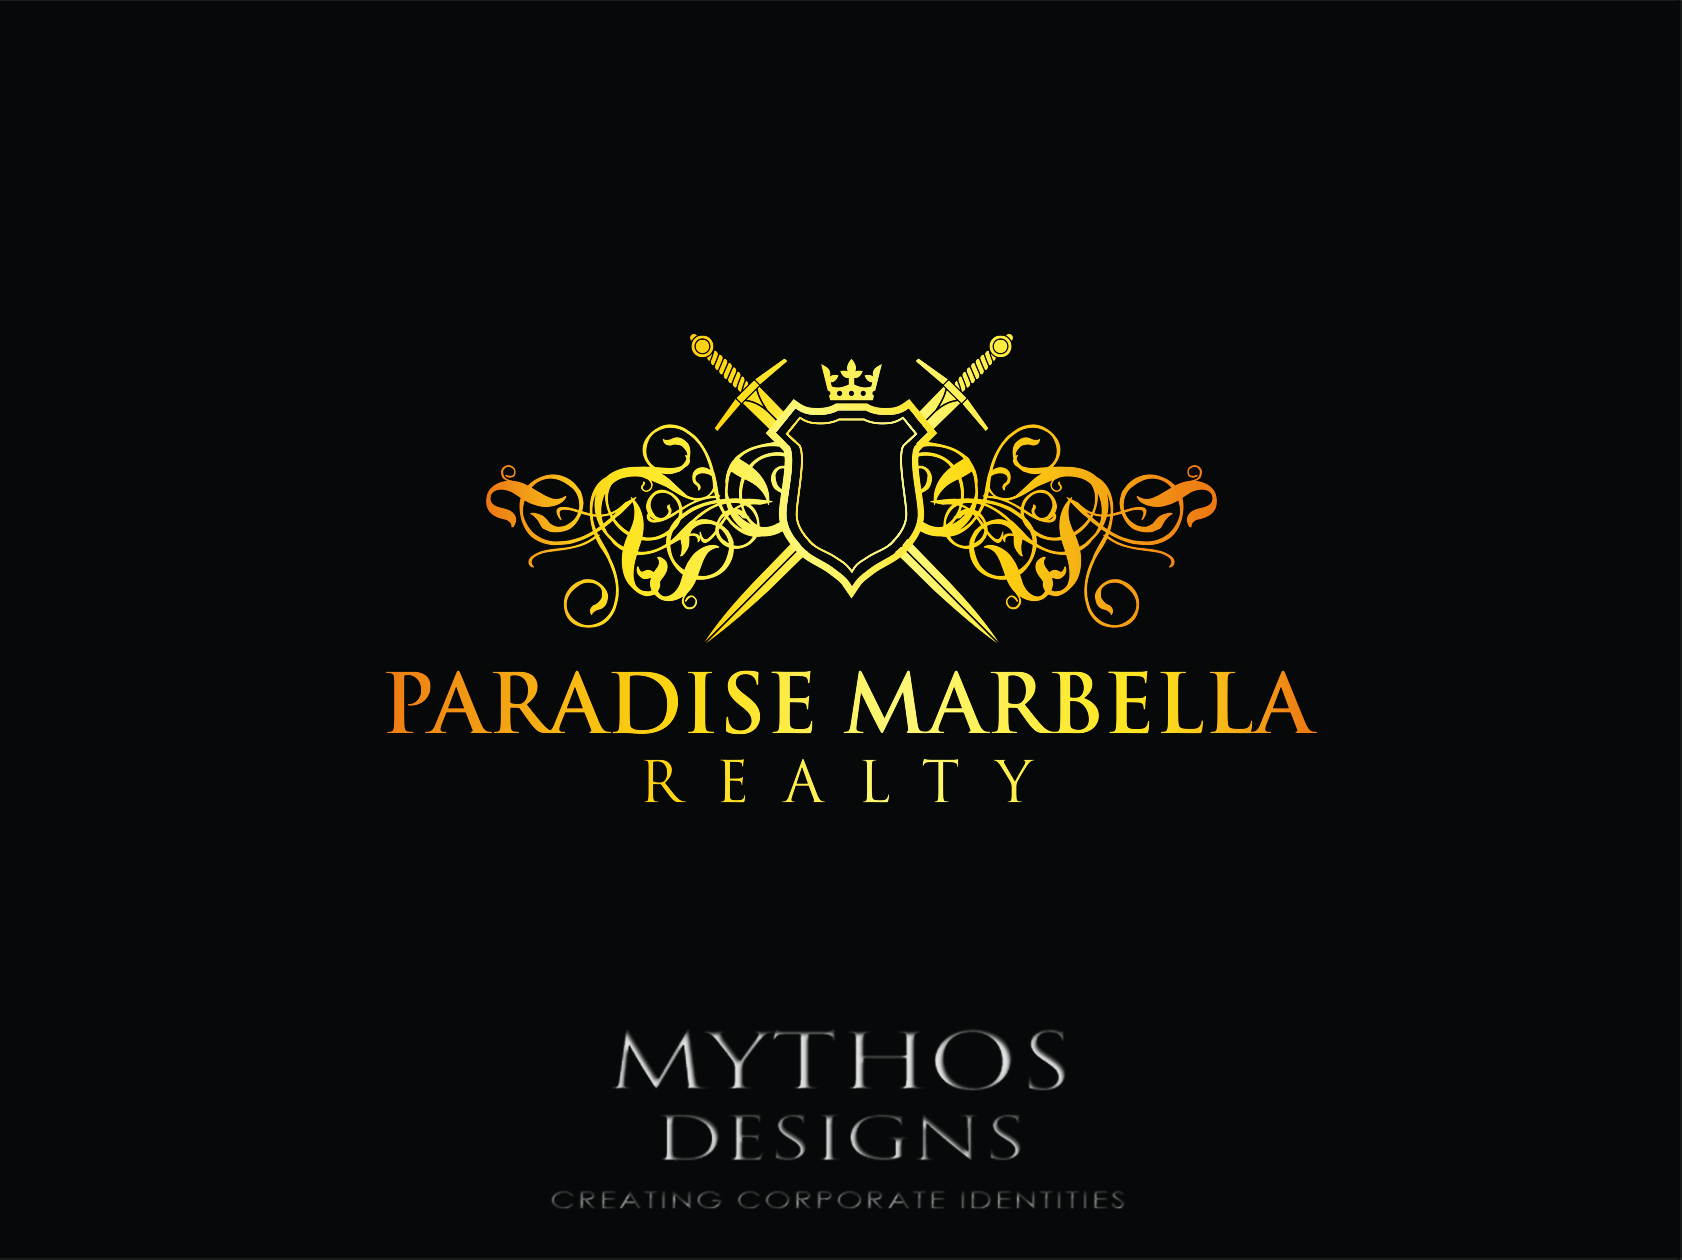 Logo Design by Mythos Designs - Entry No. 110 in the Logo Design Contest Captivating Logo Design for Paradise Marbella Realty.